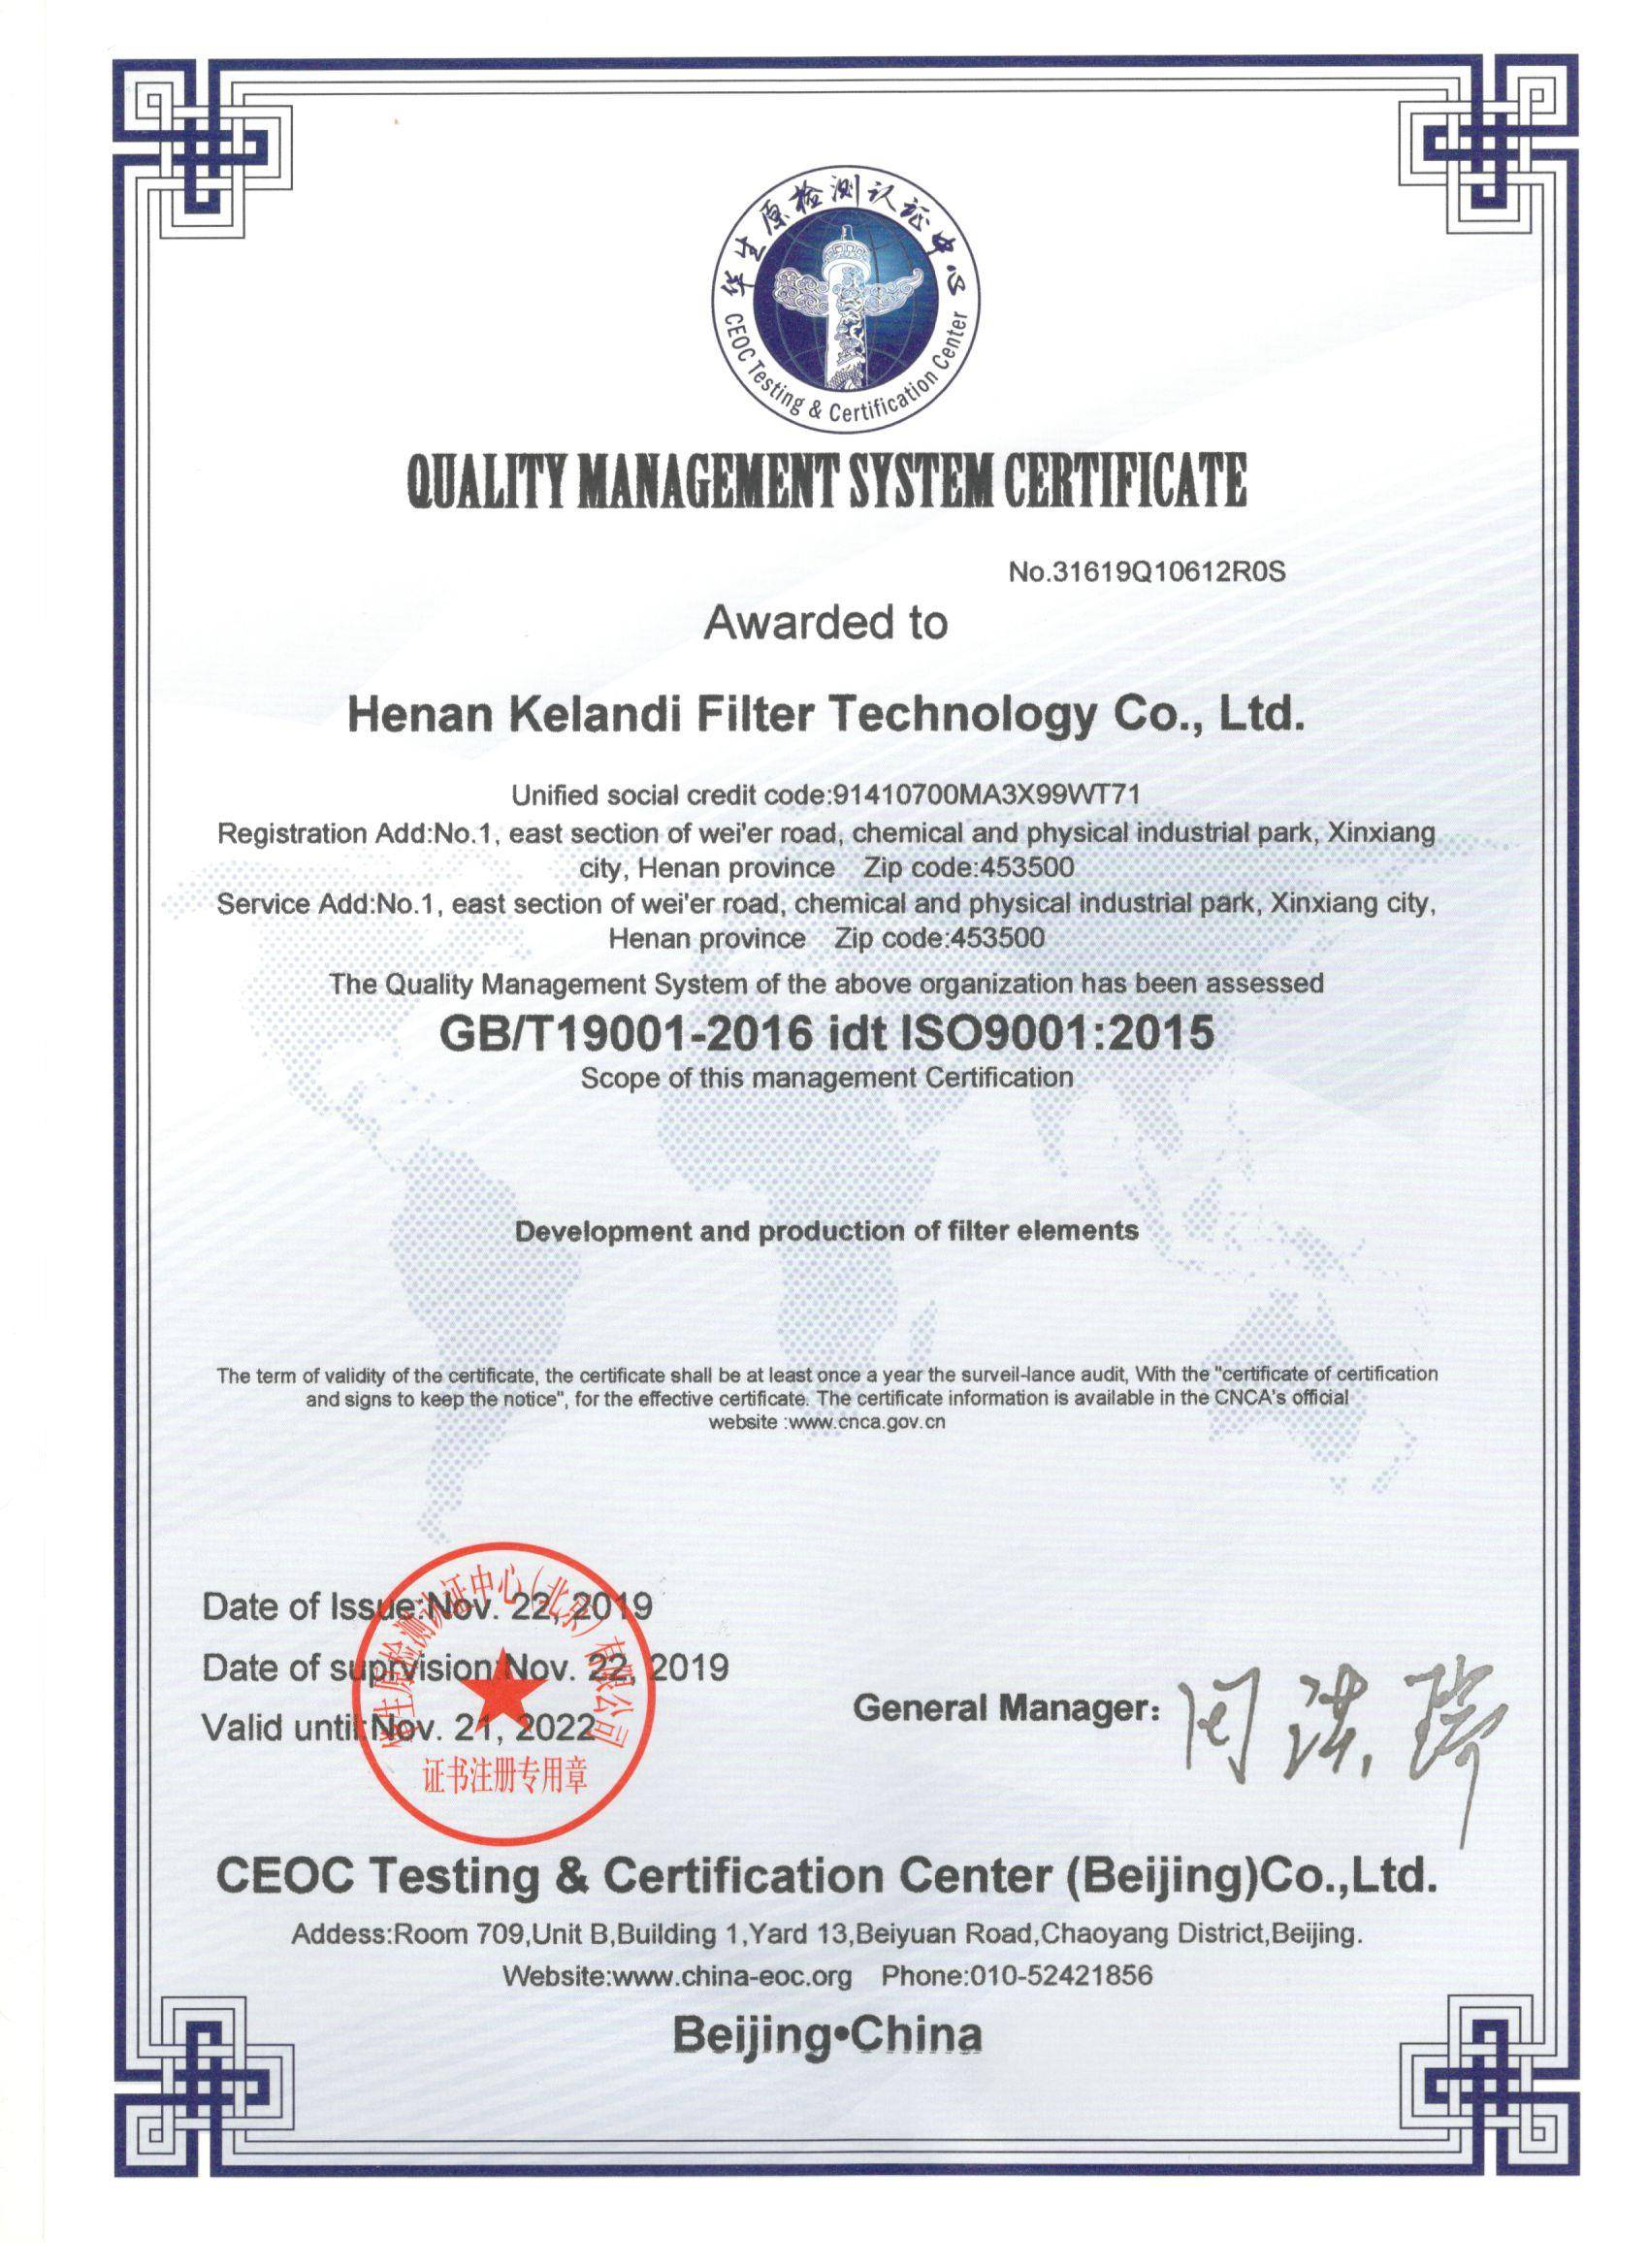 Passed the ISO9001:2015 Certification